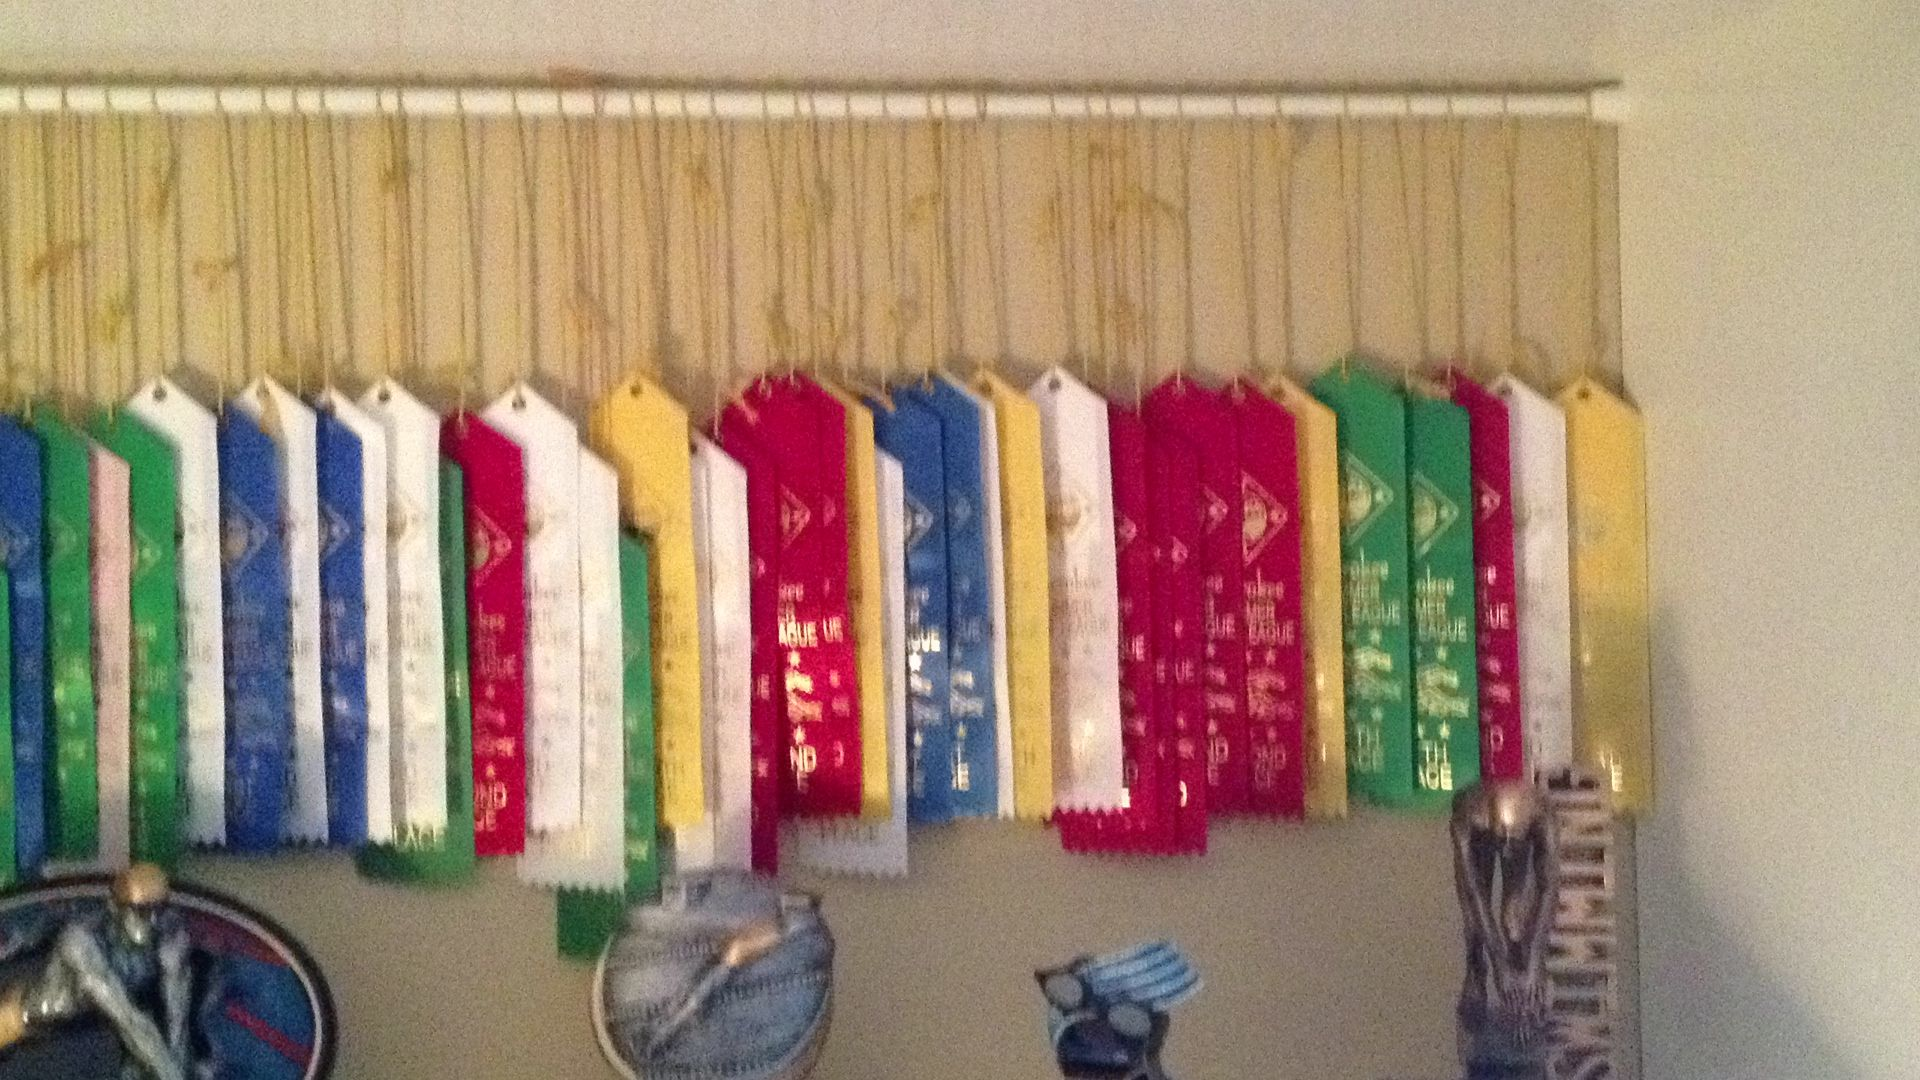 Fun Way To Display Ribbons In A Book Case Tension Rod Behind